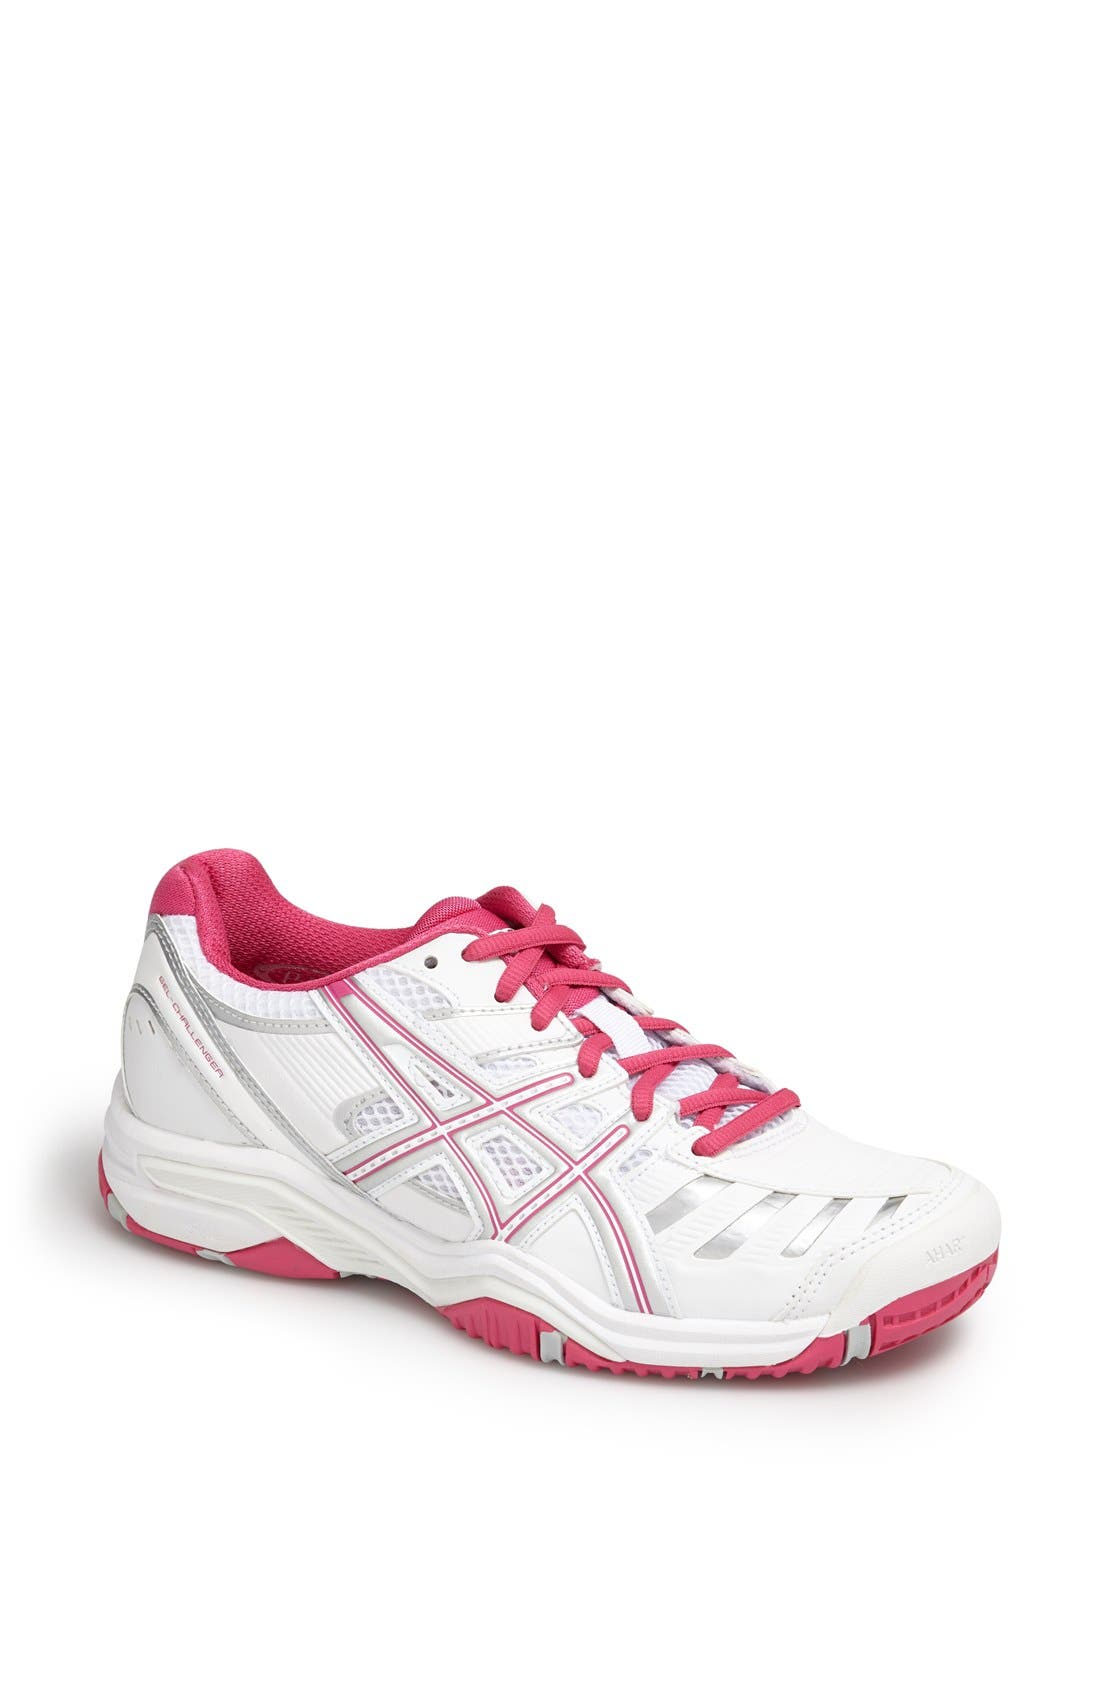 Alternate Image 1 Selected - ASICS® 'GEL-Challenger 9' Tennis Shoe (Women)